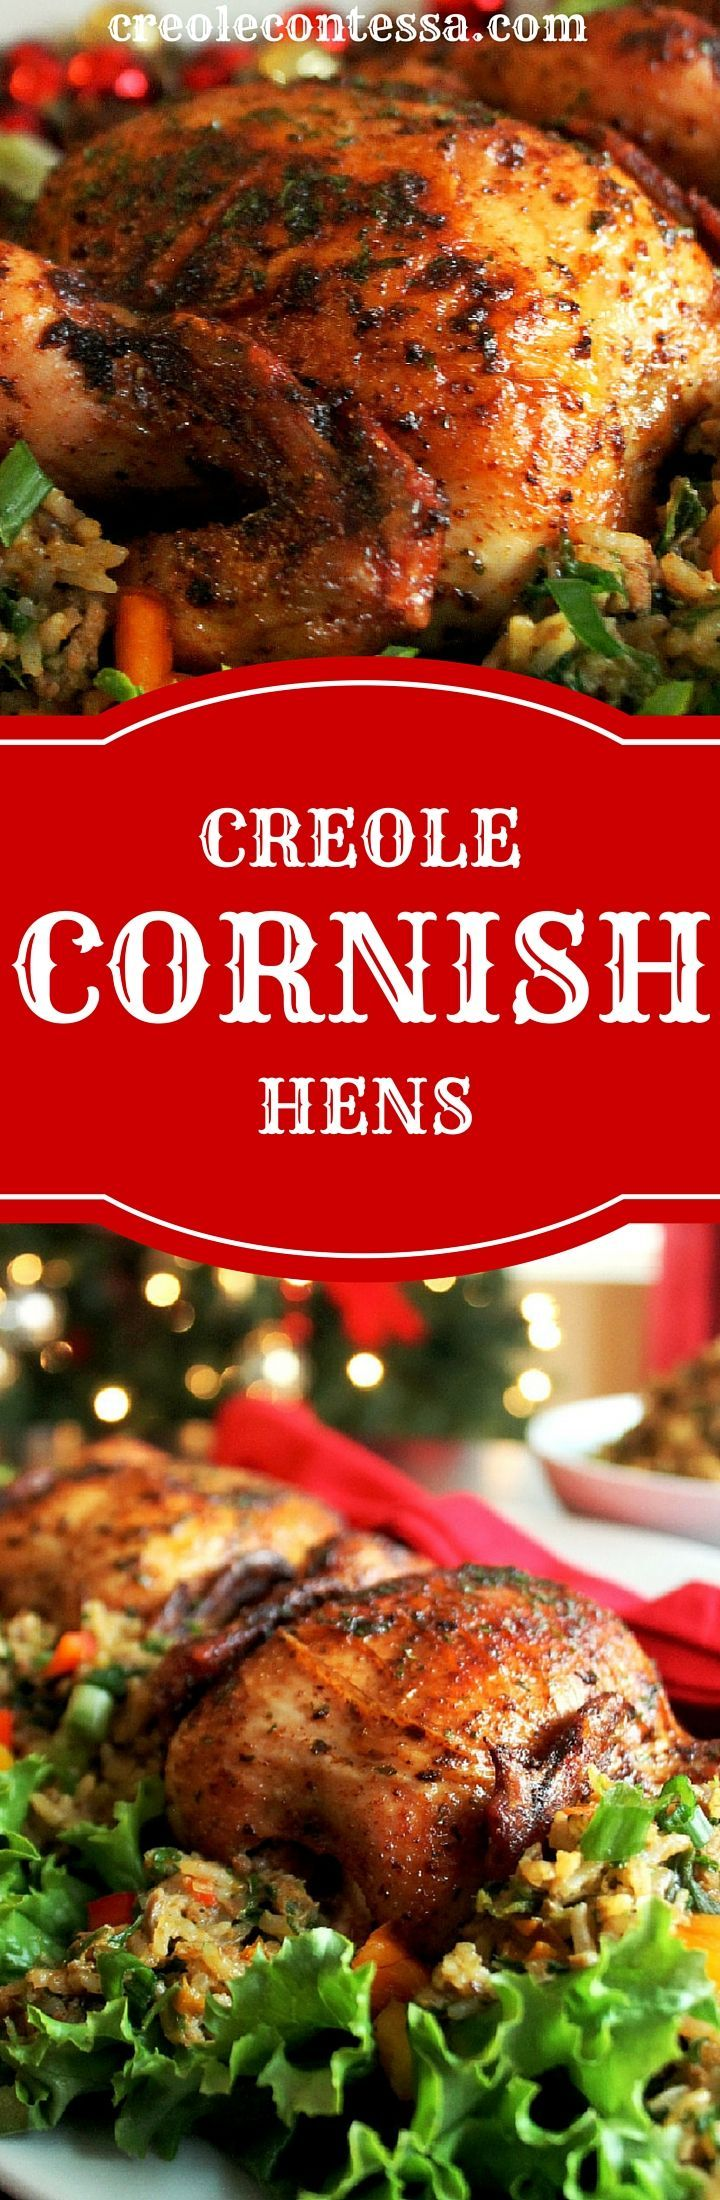 Creole Cornish Hens with Rice Dressing-Creole Contessa #ad #CornishHenHolidays #CollectiveBias